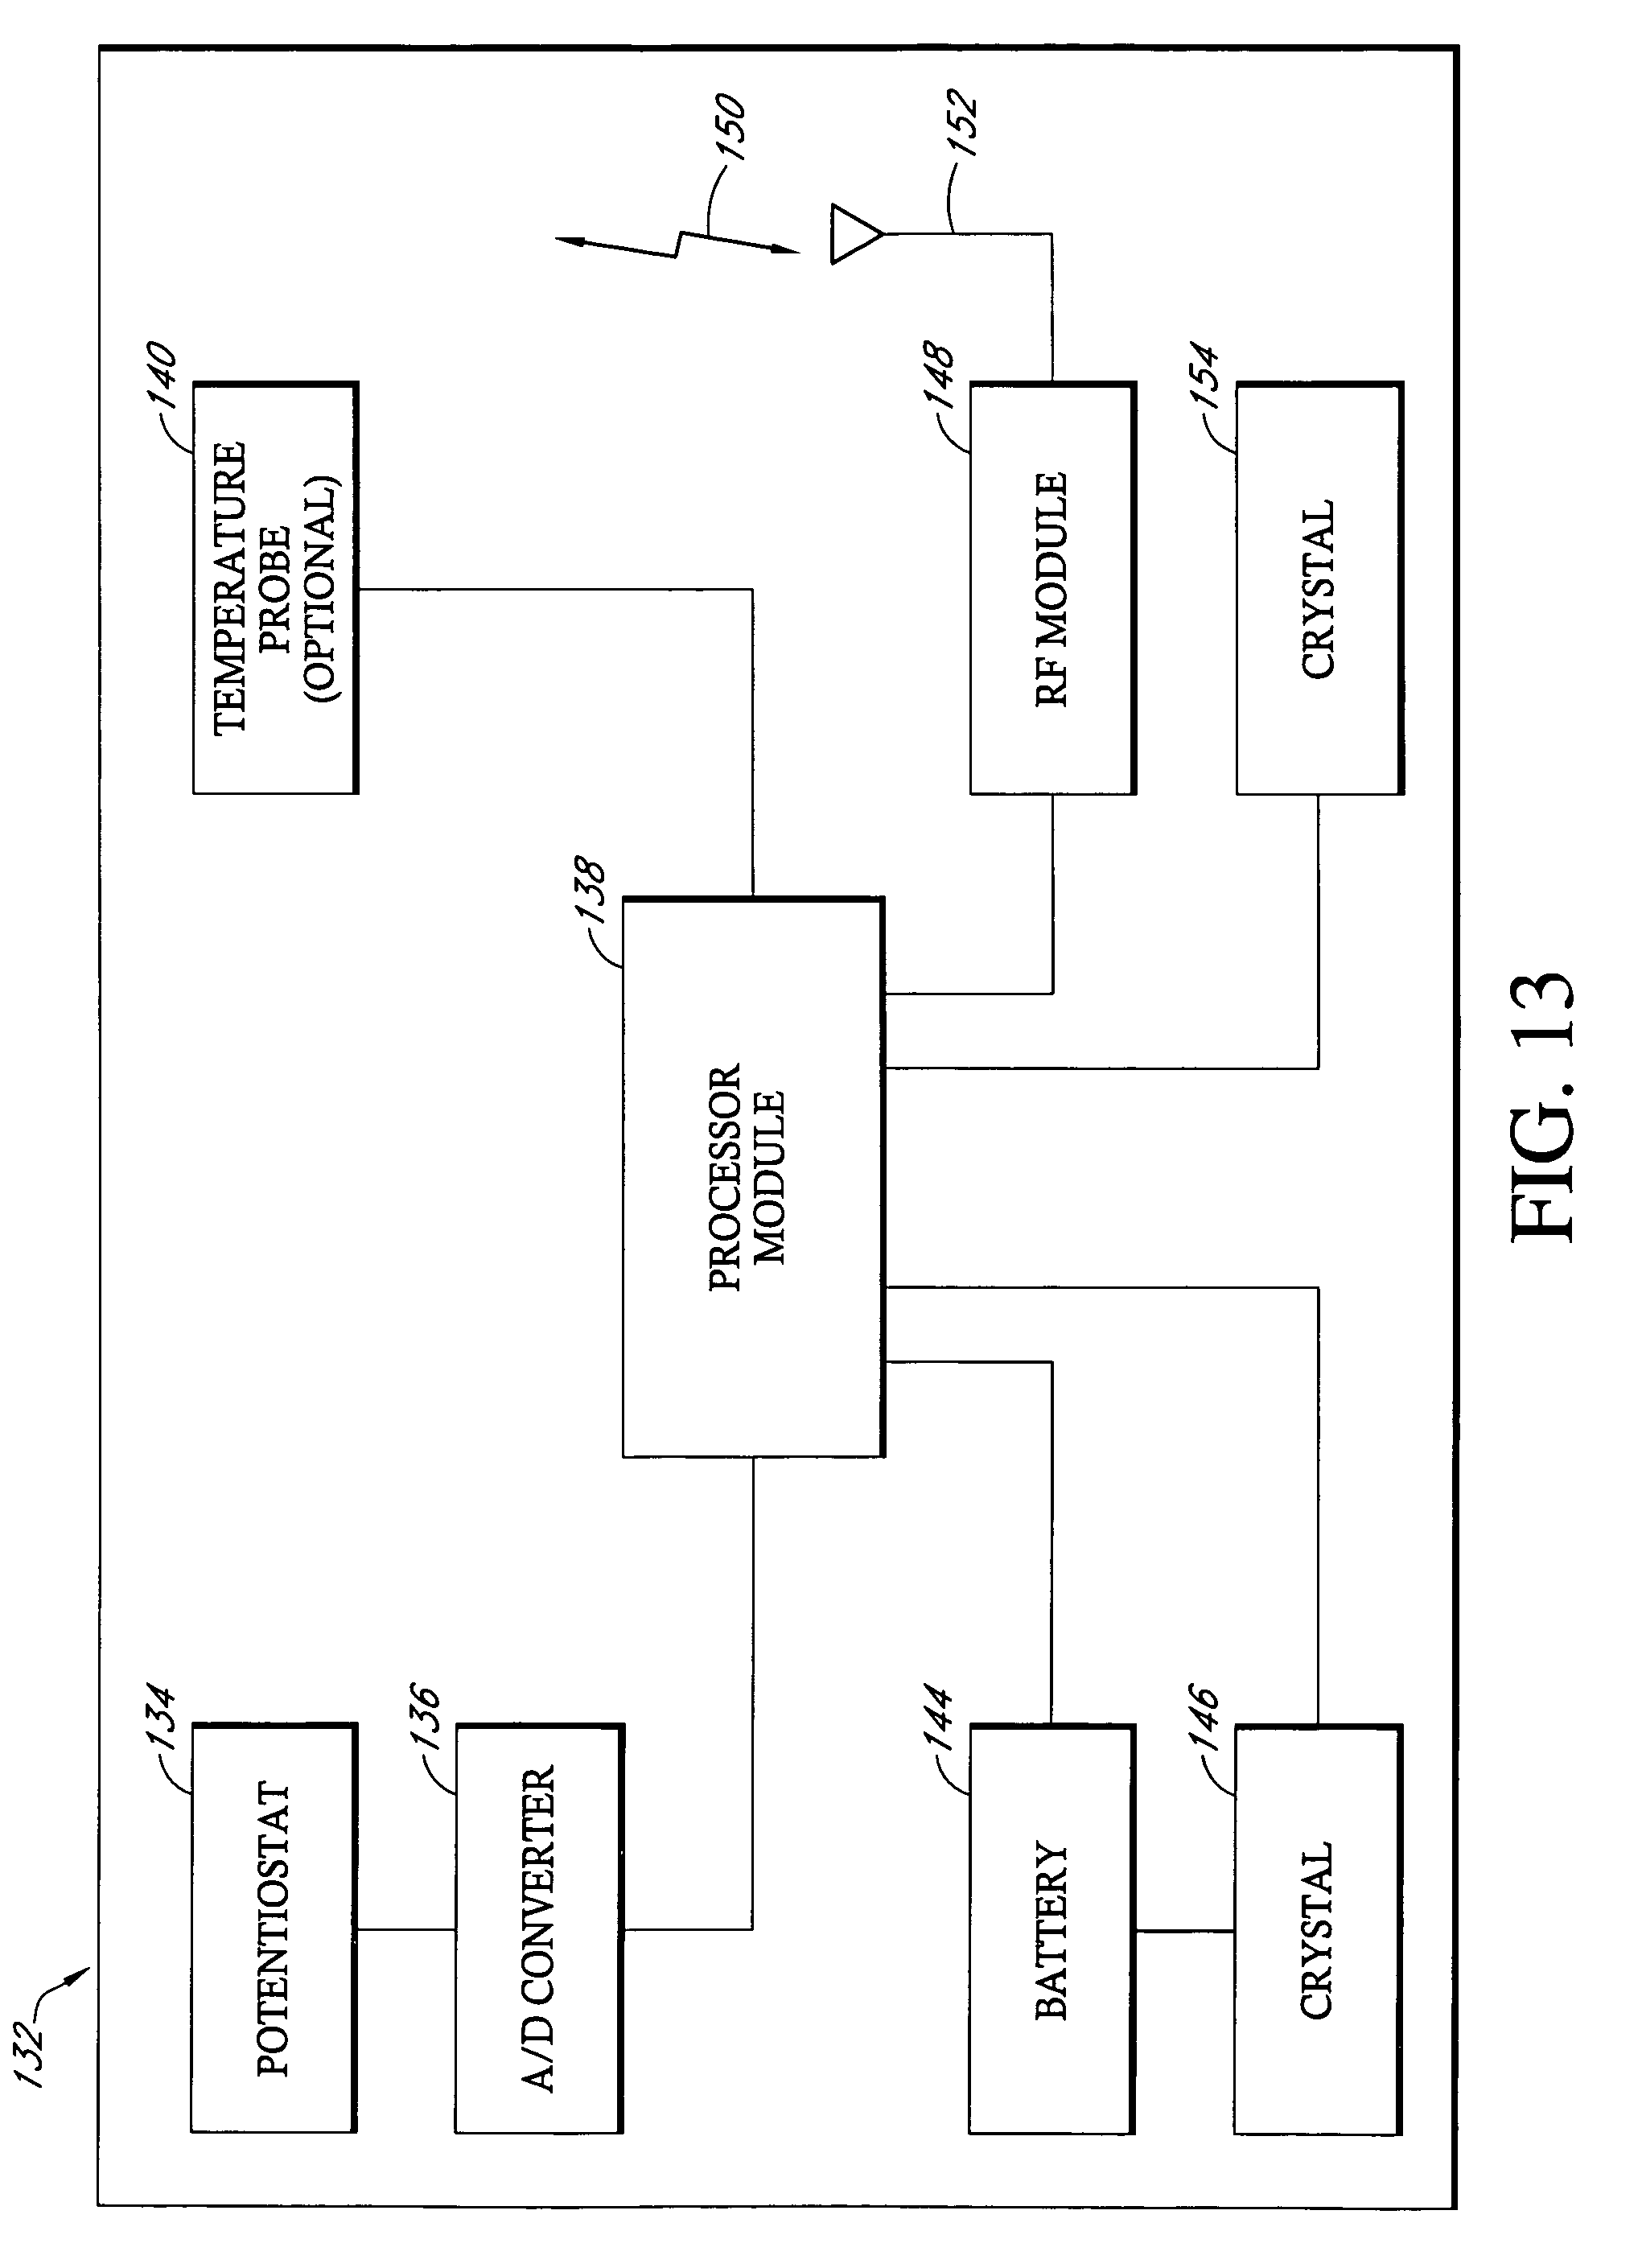 Patent Us 7885697 B2 Converter Connected To Measure Ratiometric Values Of Quad Load Cells 0 Petitions